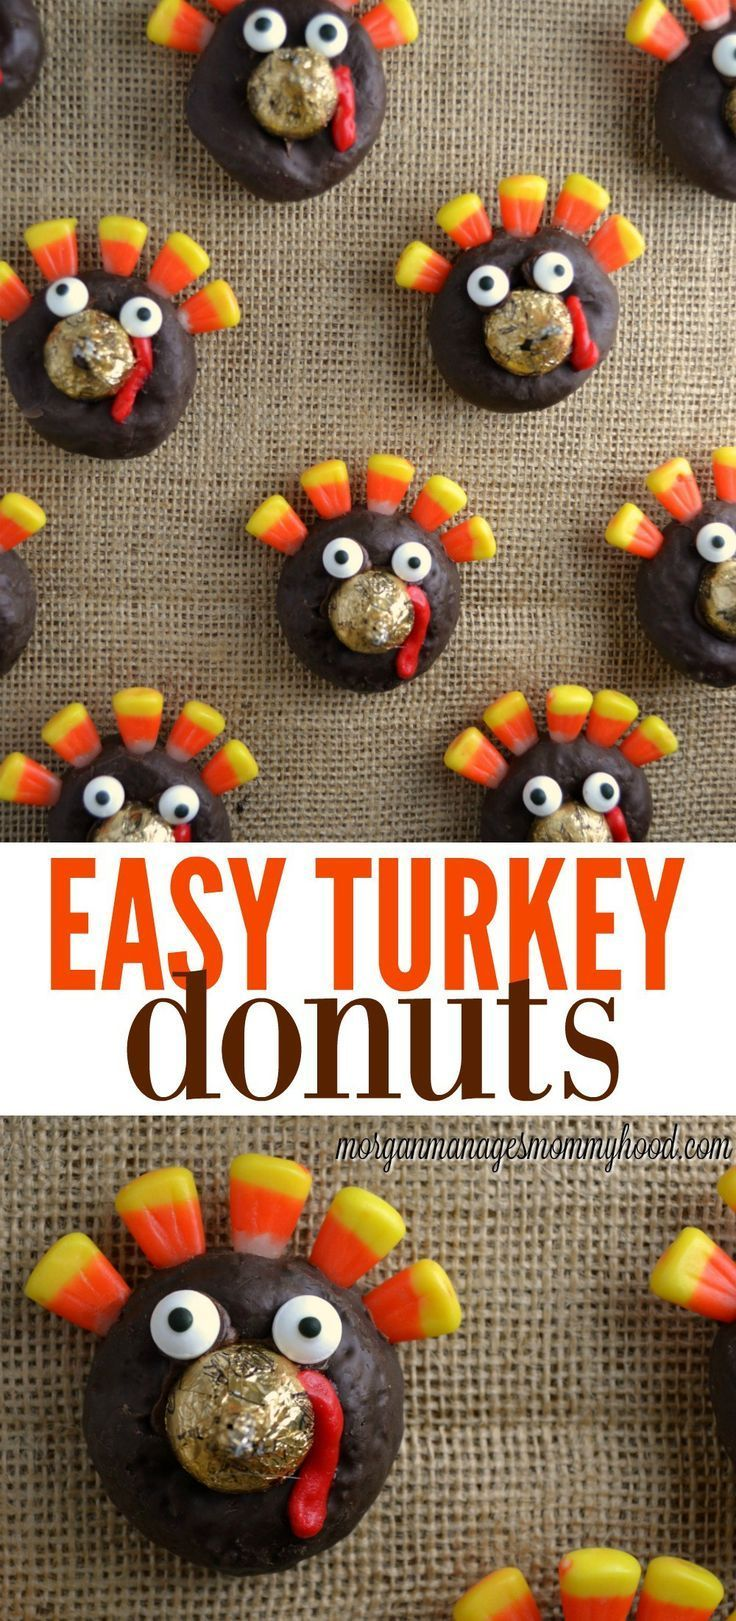 Easy Turkey Donuts 98 best Thanksgiving images